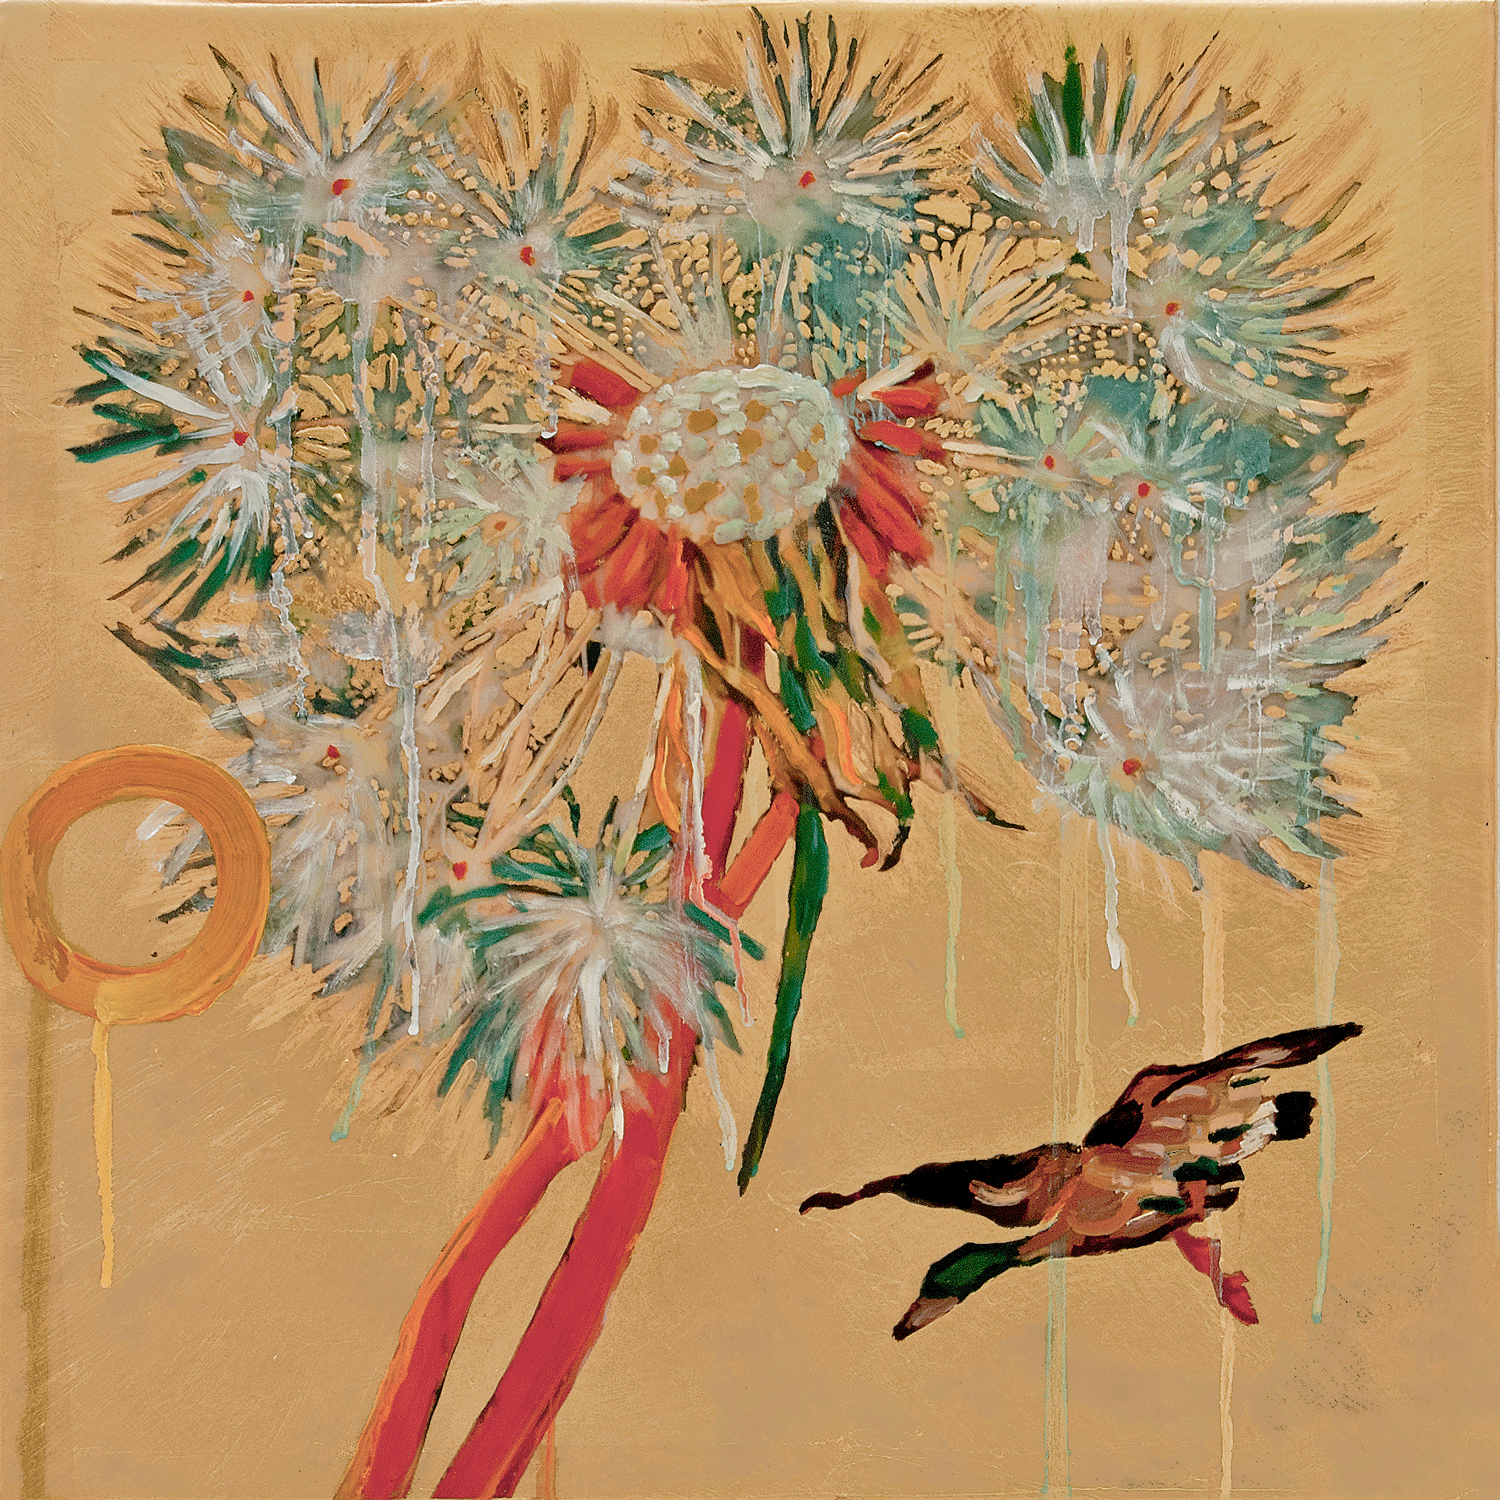 Dandelion with Mallard, 2017, Mixed Media, 20.5 x 20.5 Inches